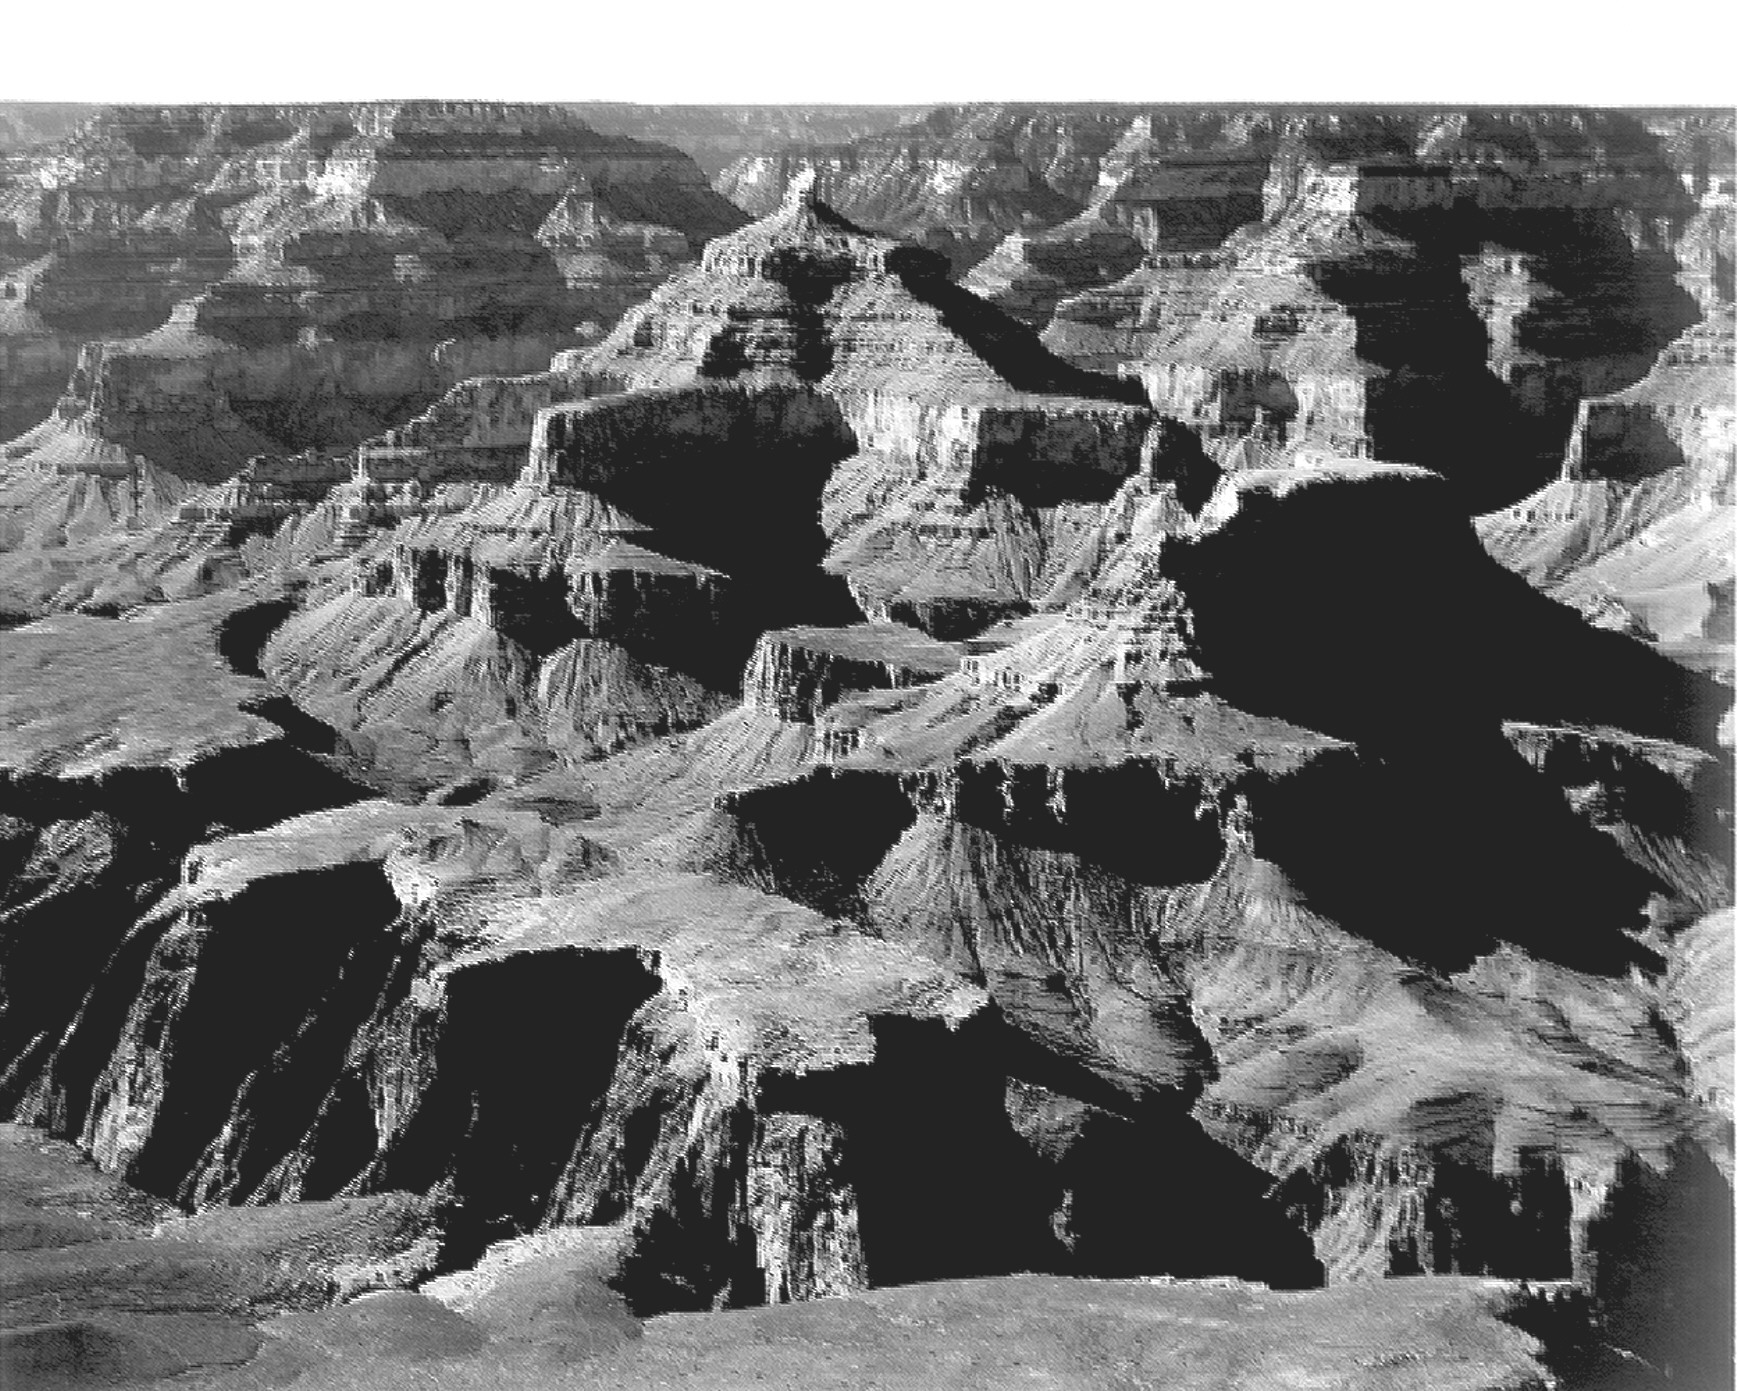 Discover ansel adams 39 226 photos of u s national parks for Ansel adams the mural project 1941 to 1942